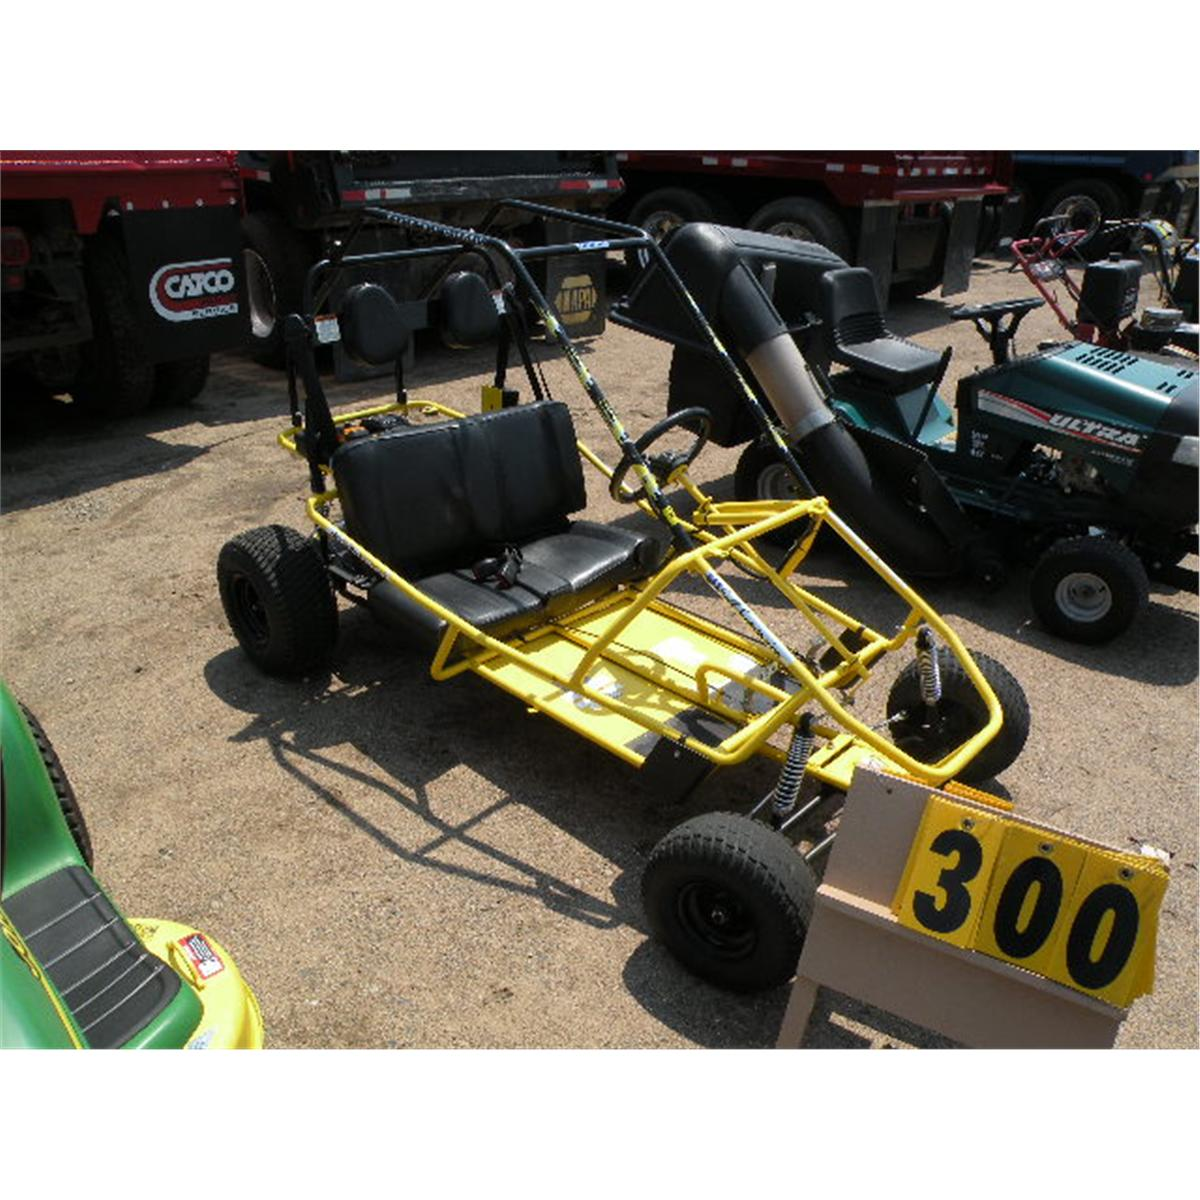 Similiar Manco Go Kart Company Keywords Scorpion Wiring Diagram 600 Dingo In Brunswick Maryland For Sale